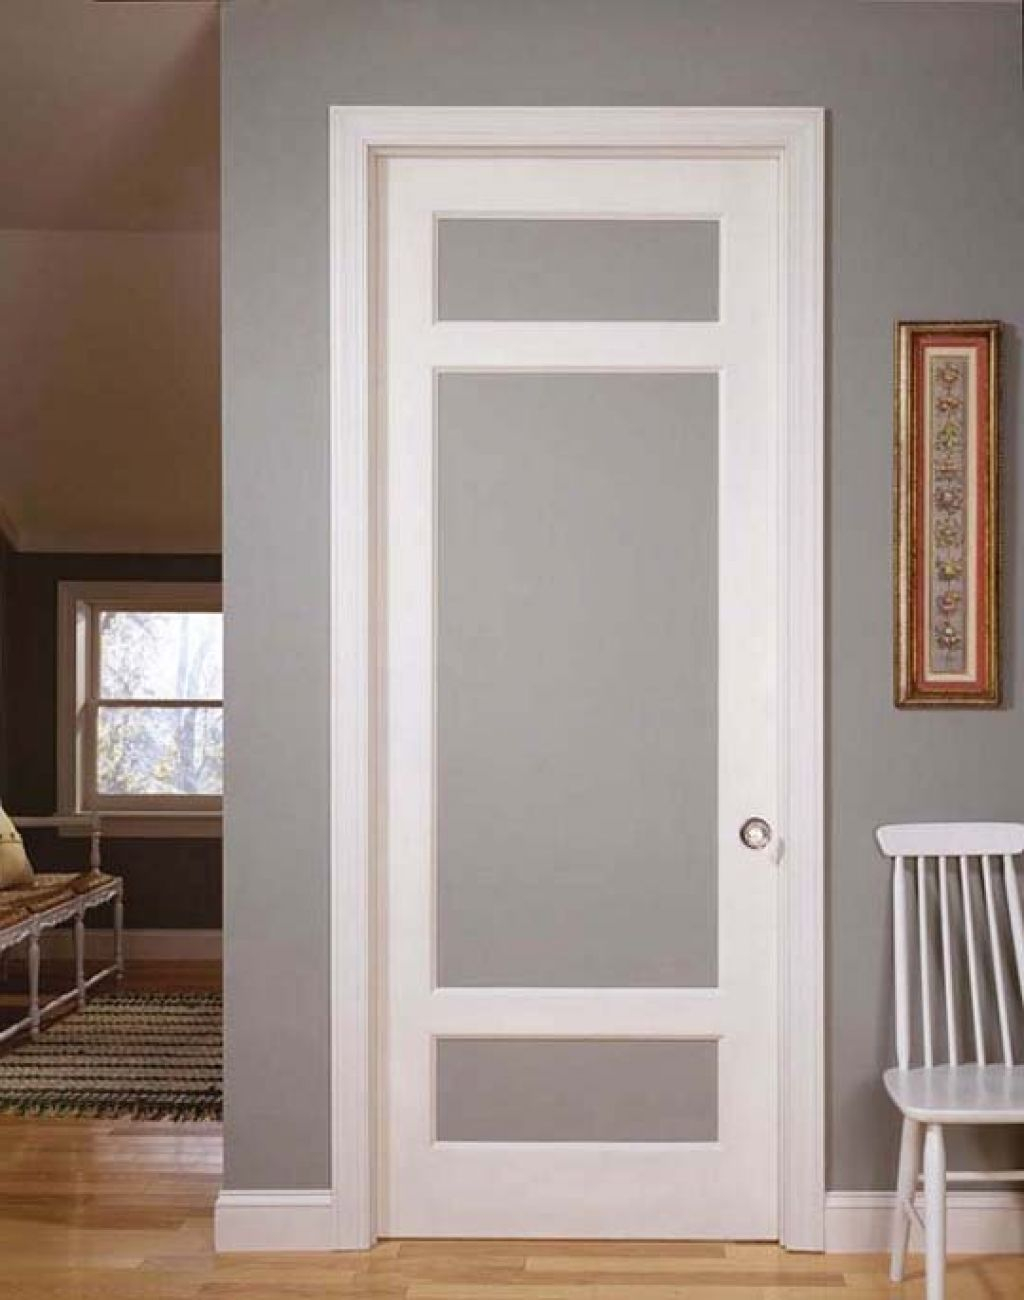 Simple Vintage Styled Interior Doors With Frosted Glass And Using pertaining to proportions 1024 X 1300